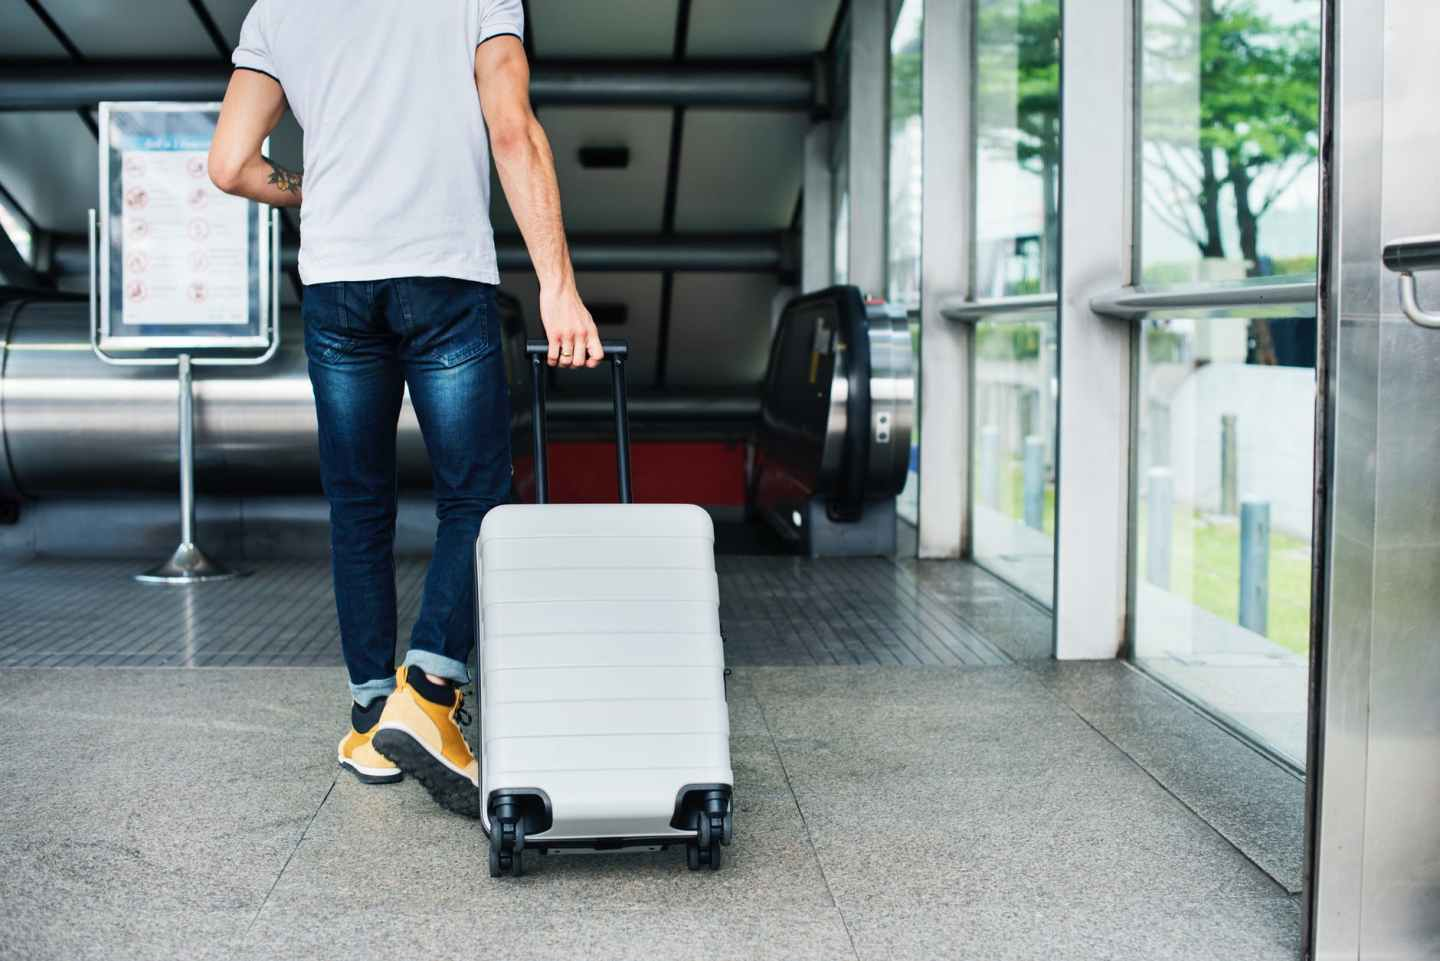 Cabin luggage: how to choose it